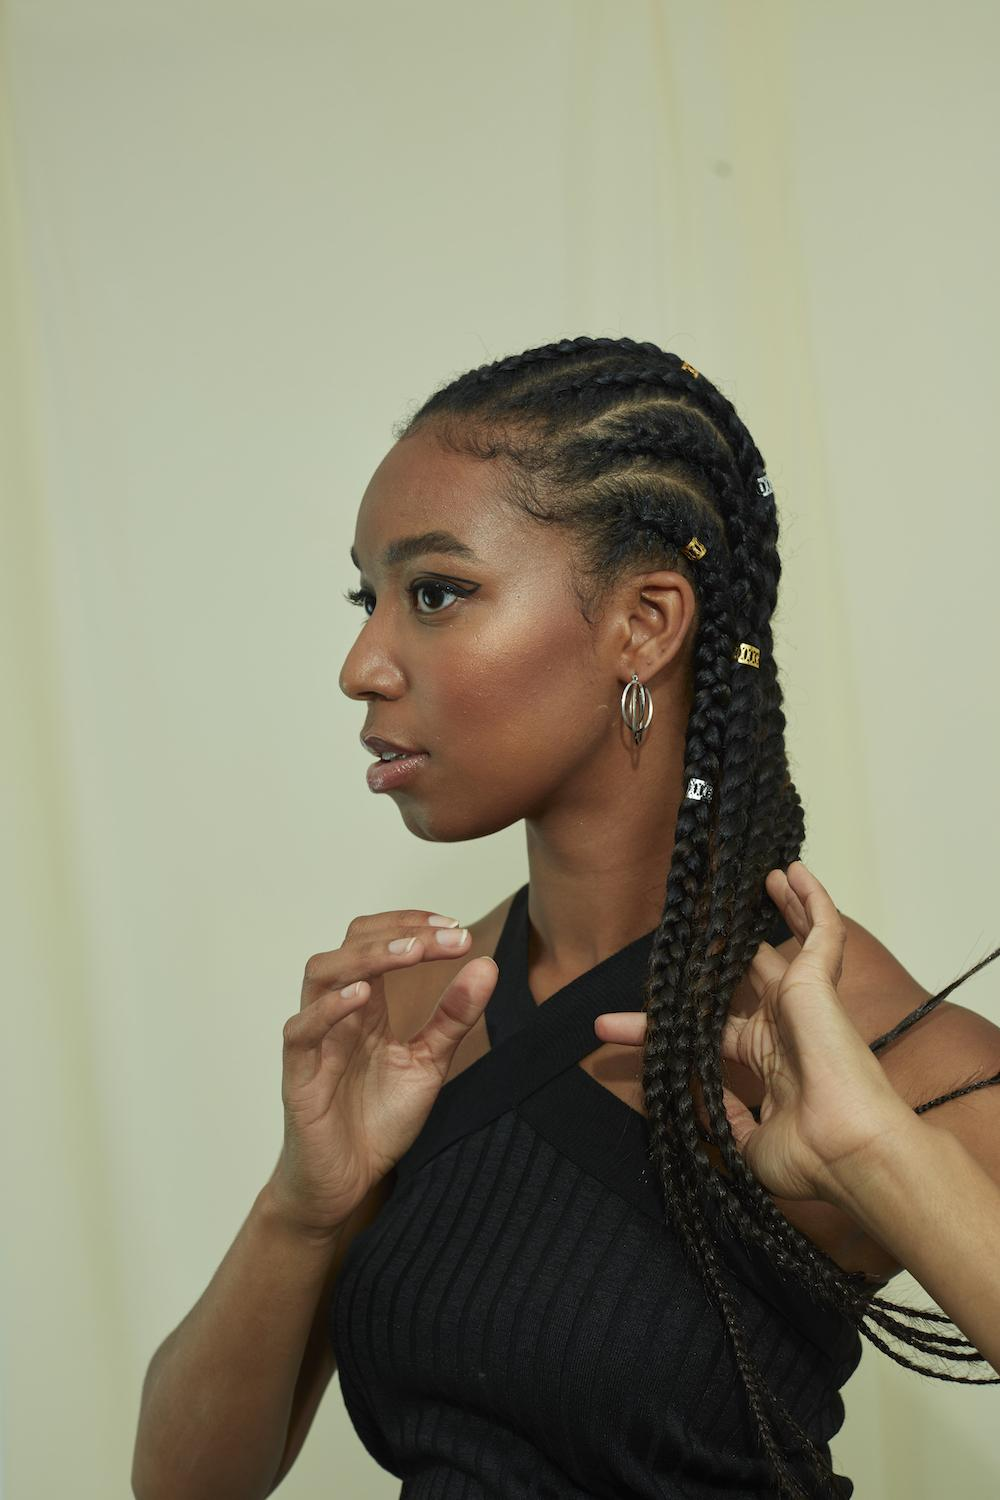 Braid Styles For Black Women To Try All Things Hair 2020 There's likely no braiding style for men that's better known than cornrows. braid styles for black women to try